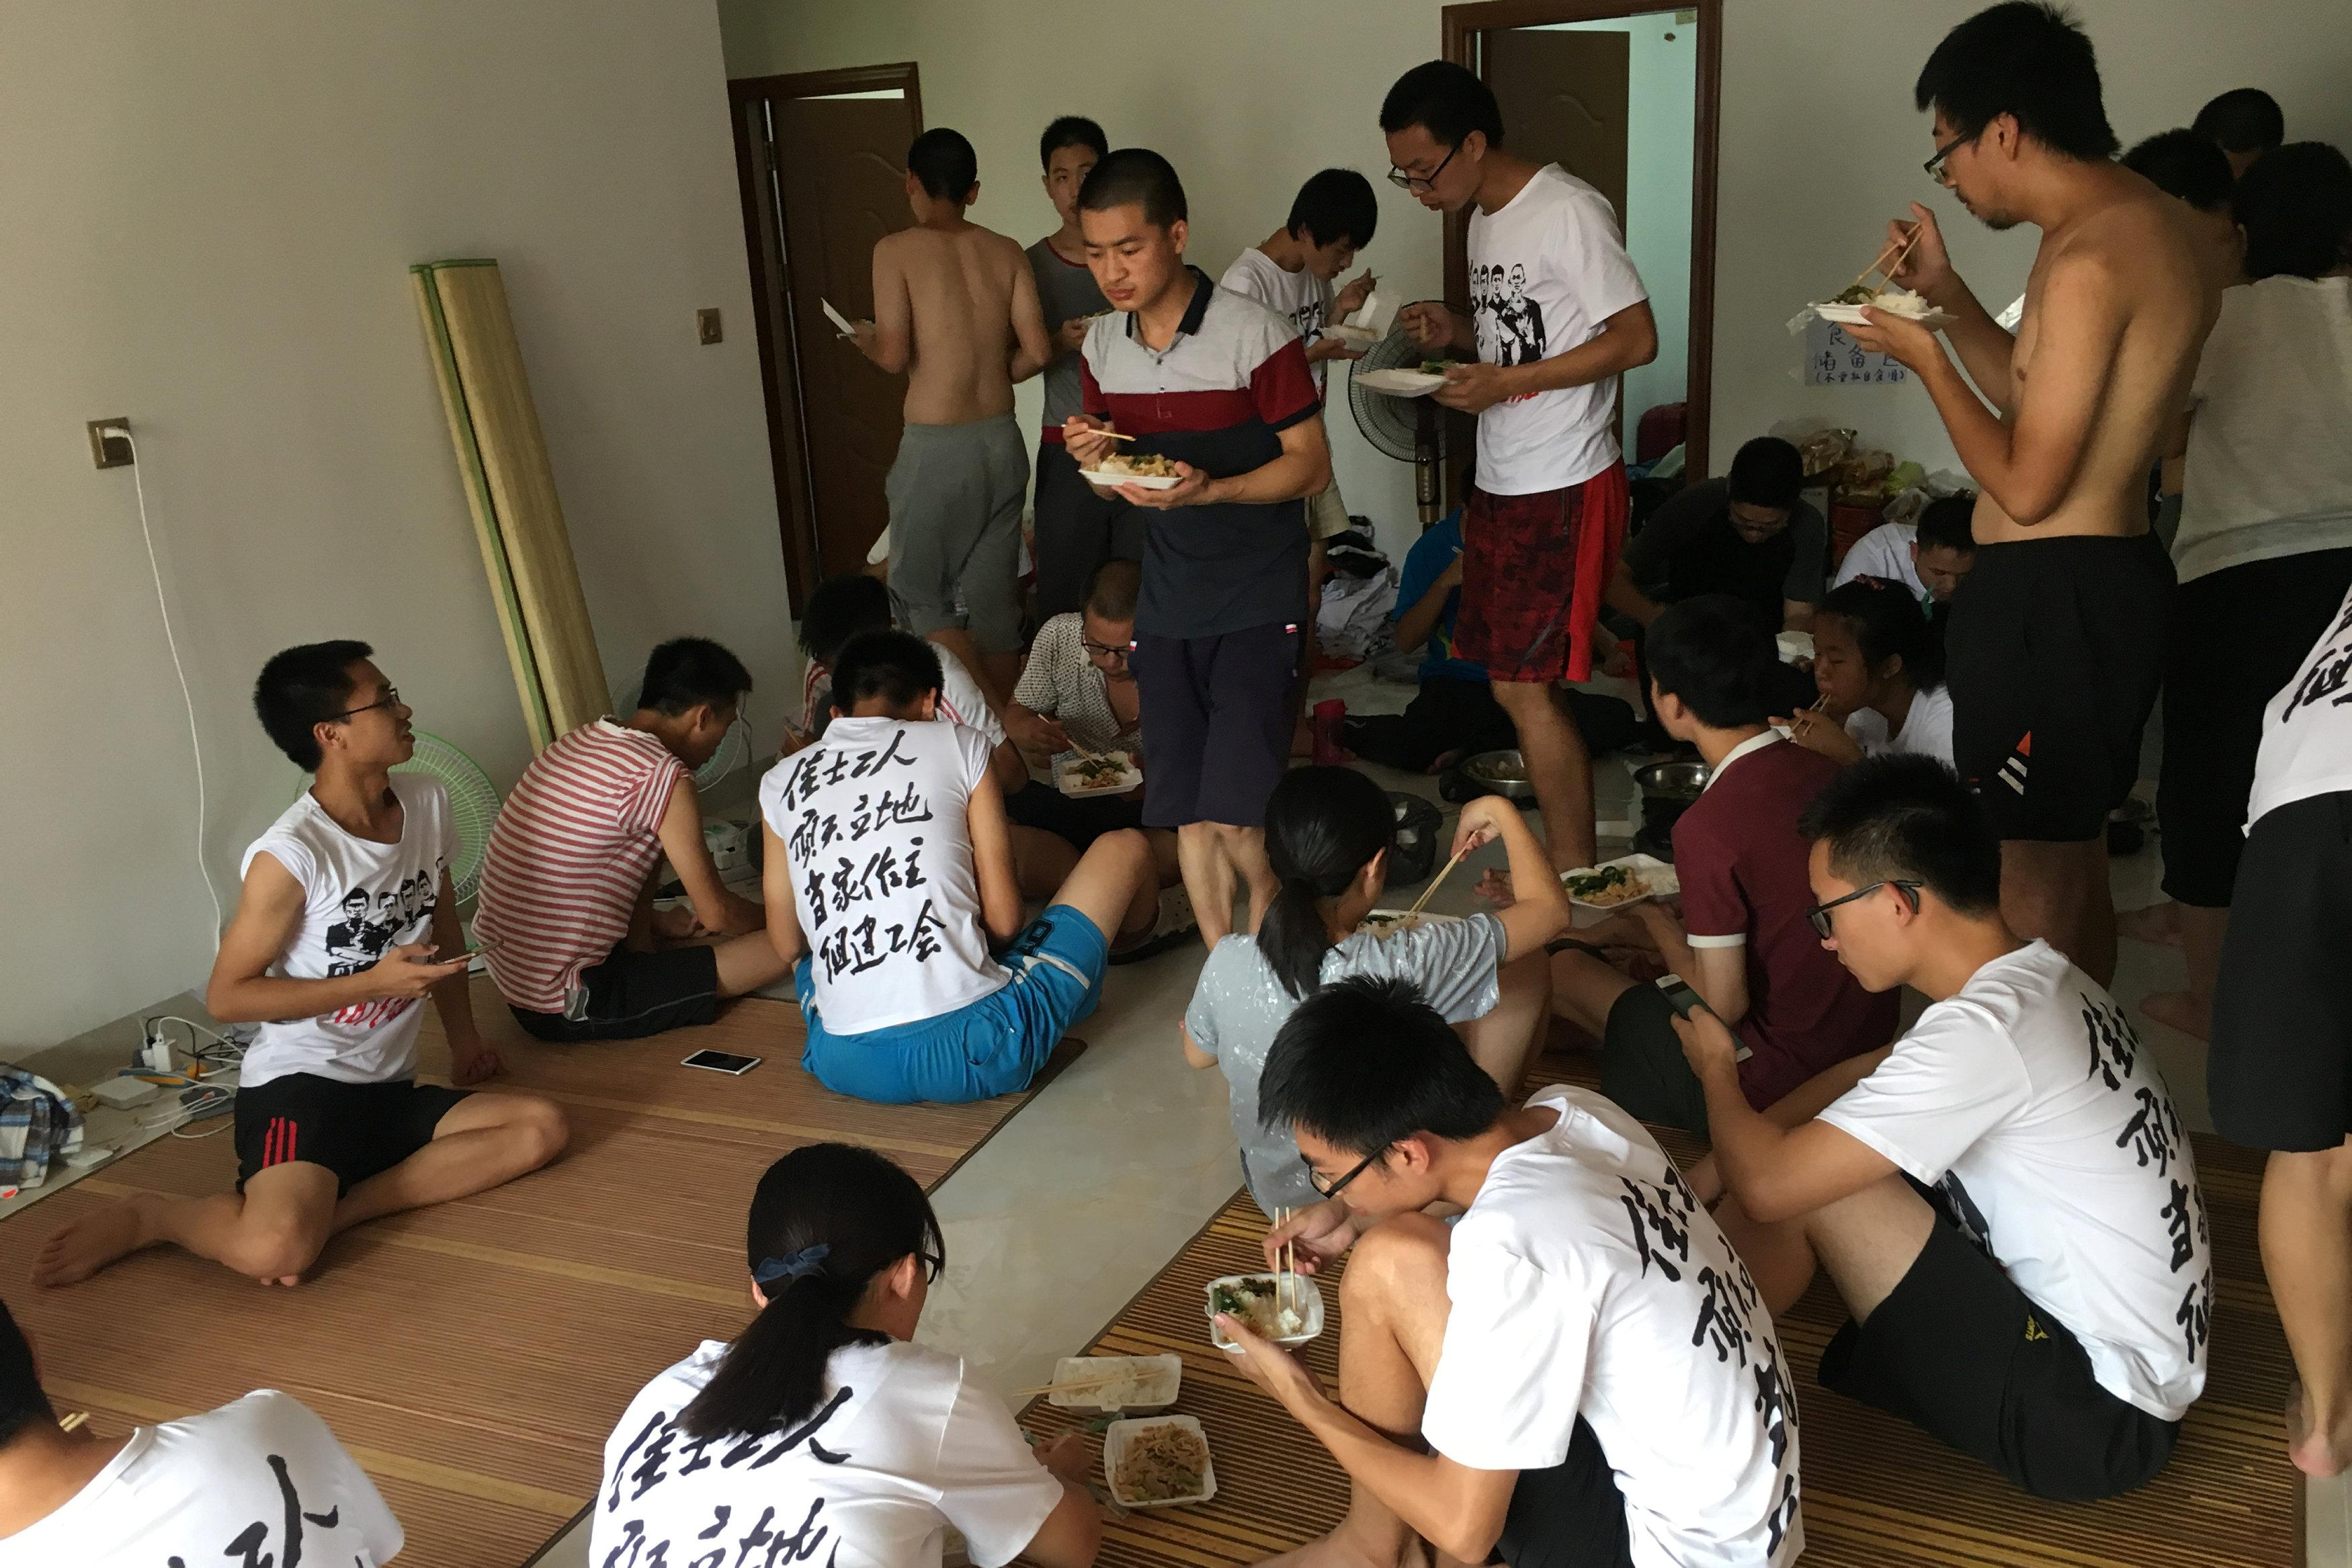 Student activists and others supporting factory workers seeking to form a labor union are seen inside an apartment in Huizhou, near Shenzhen, Guangdong province, China August 23, 2018.  Sue-Lin Wong